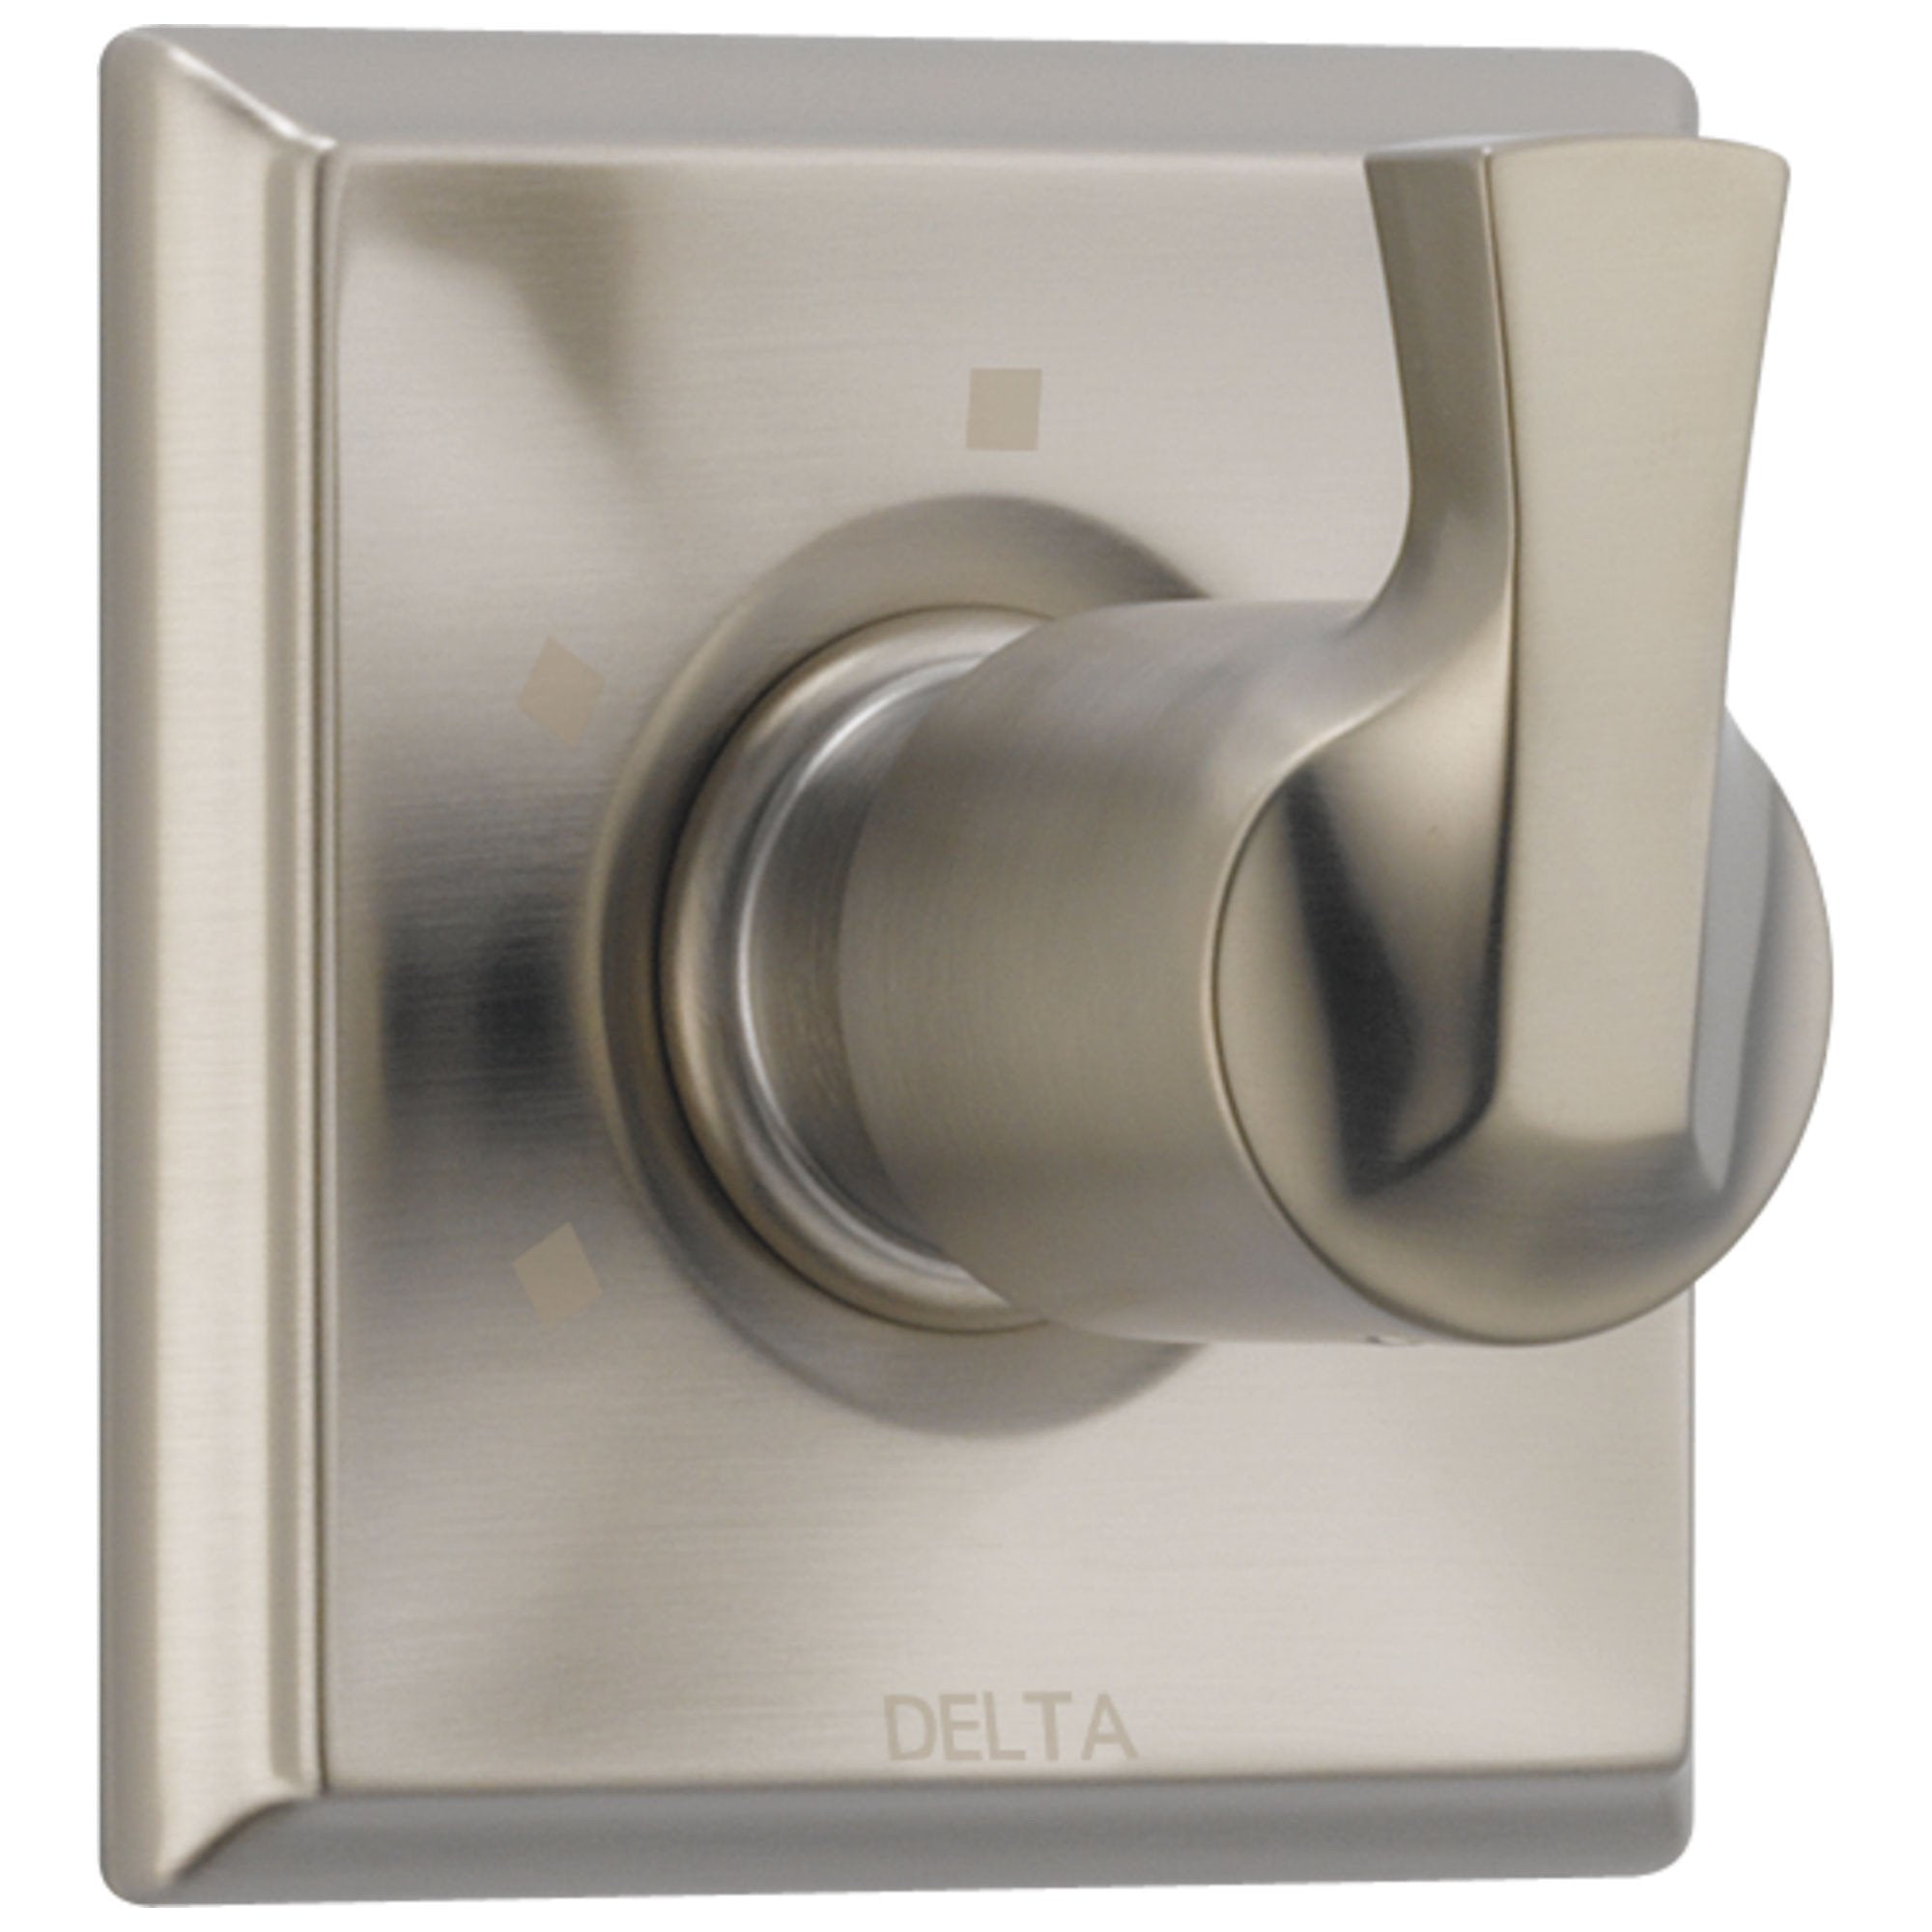 Delta Dryden Collection Stainless Steel Finish 3-Setting 2-Port Contemporary One Handle Shower System Diverter Trim (Valve Sold Separately) DT11851SP